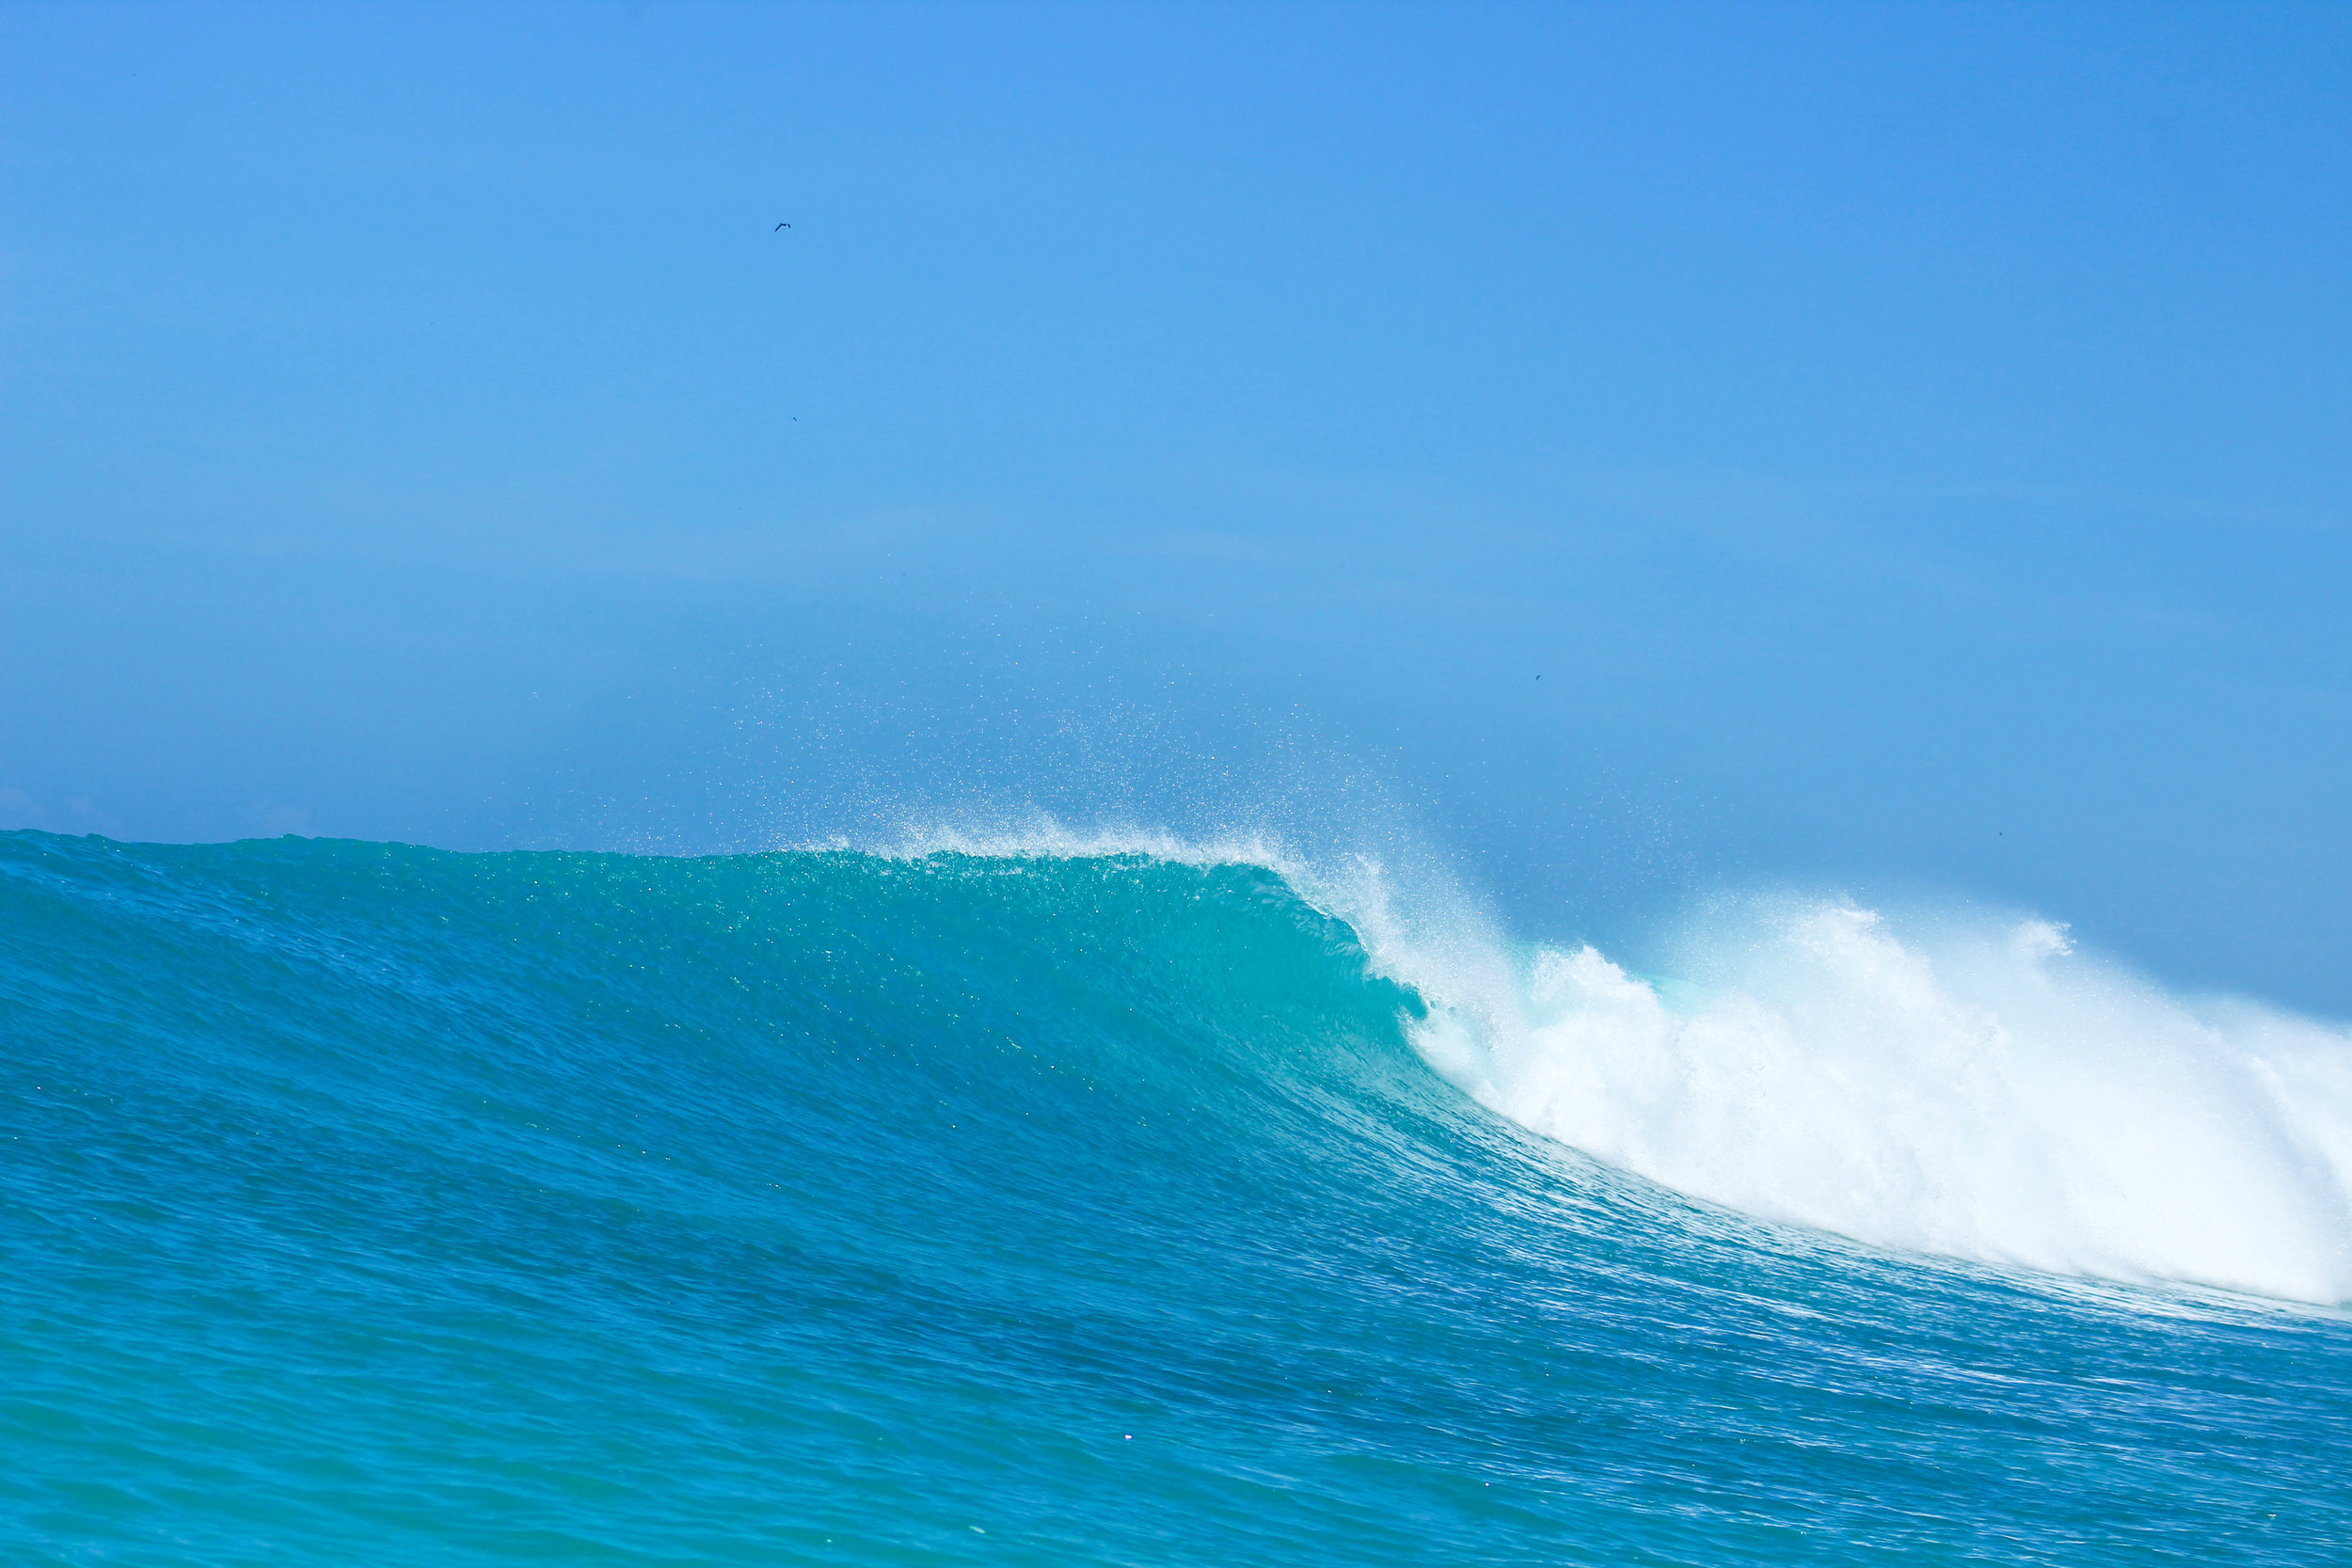 Aqua blue and ready to be surfed.